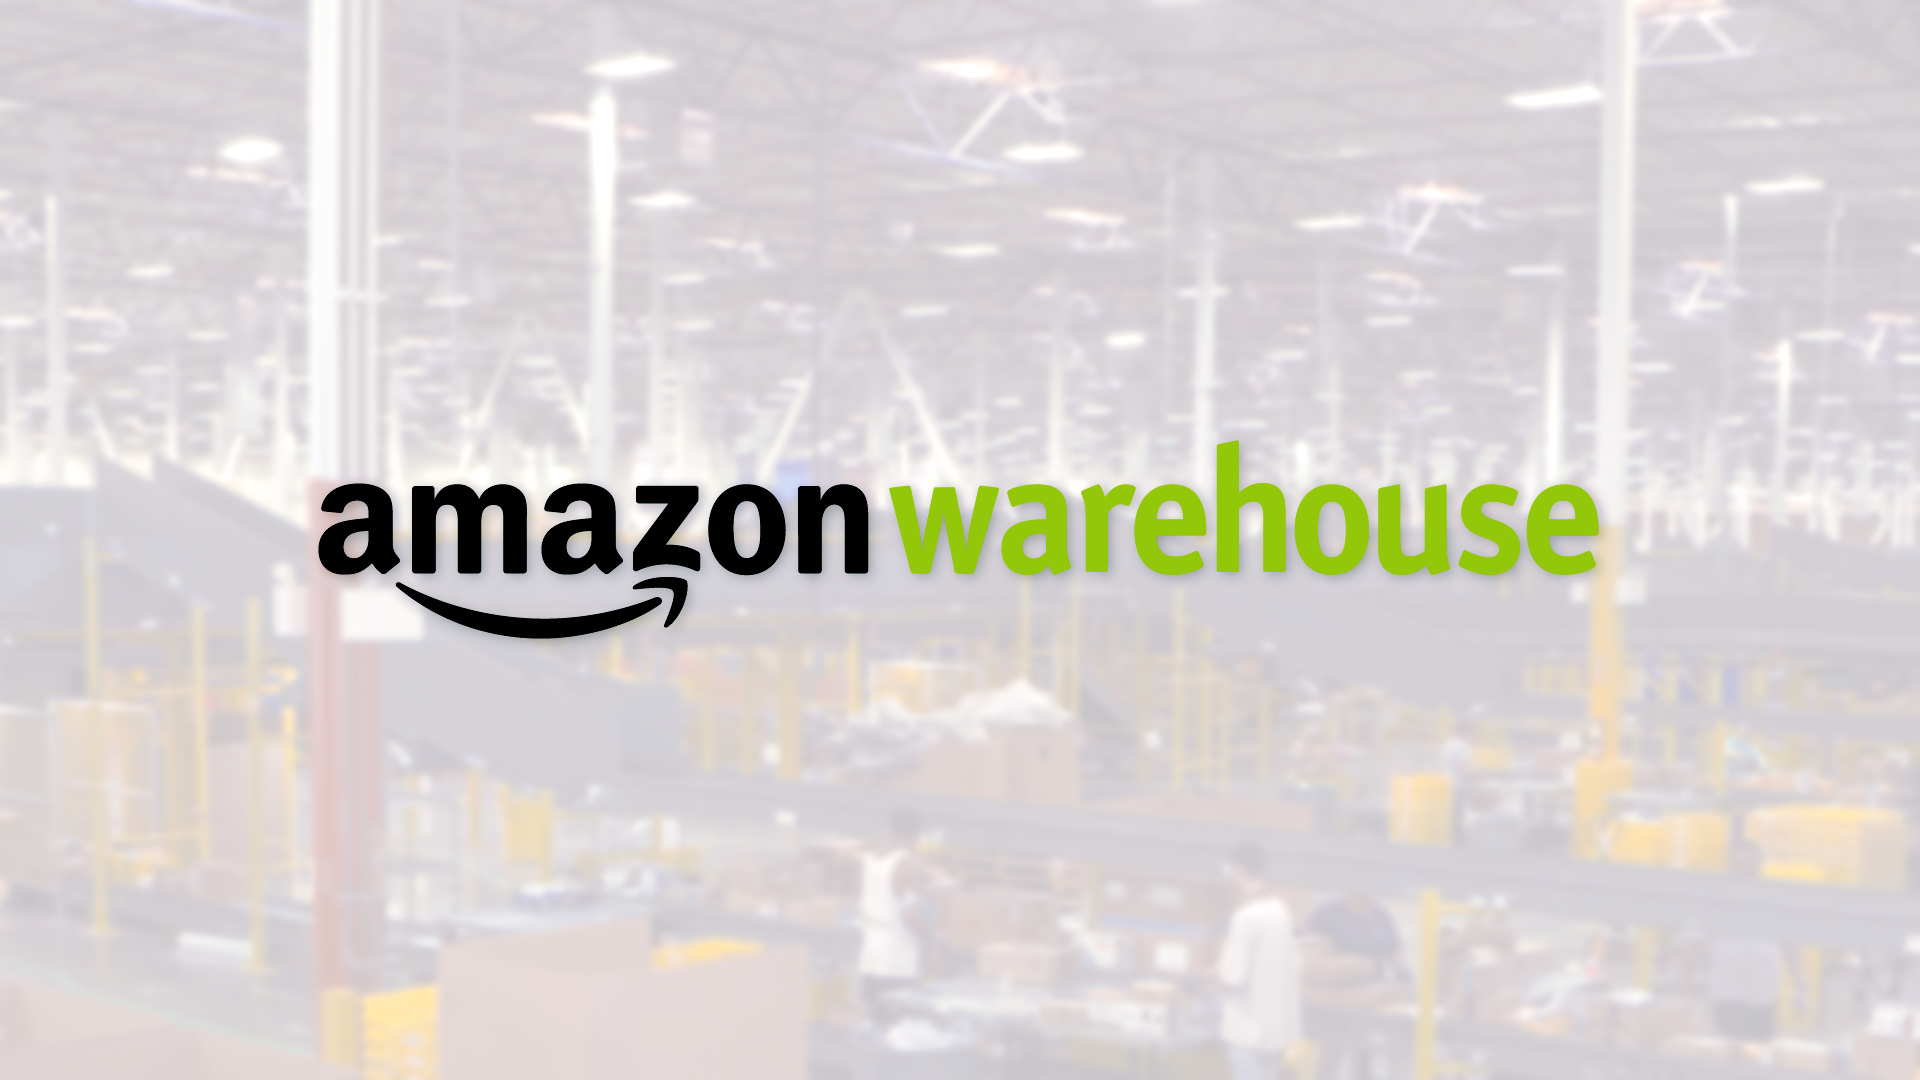 Amazon Warehouse | Great deals on quality used products